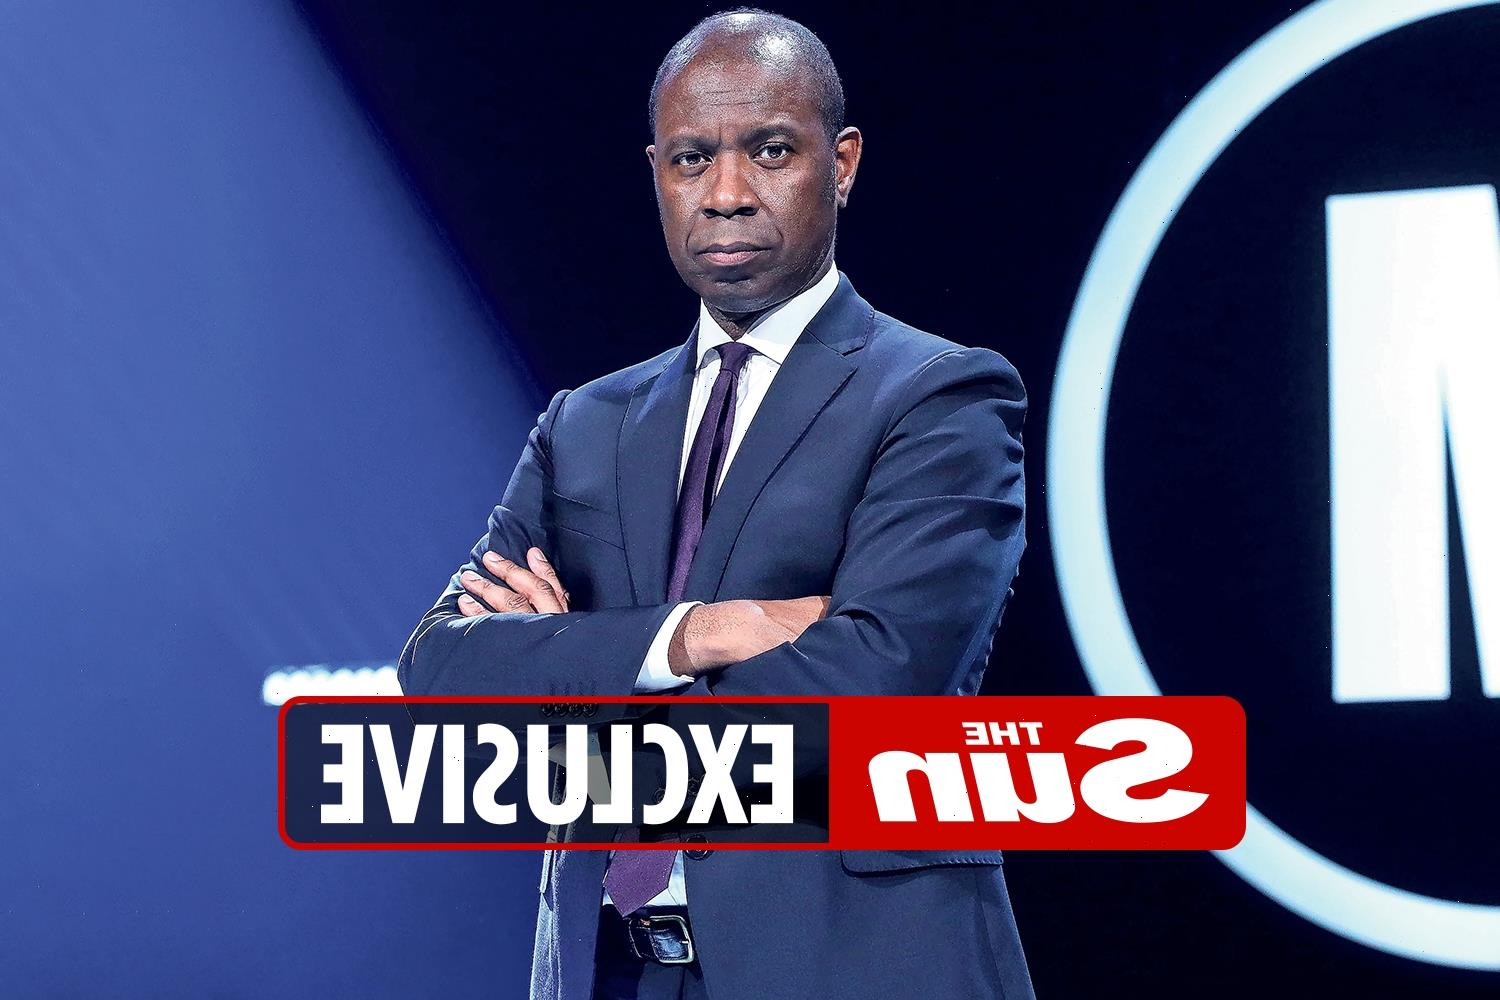 There are all sorts of kinky people who'd make a Pass at newsreaders like me, says Mastermind host Clive Myrie